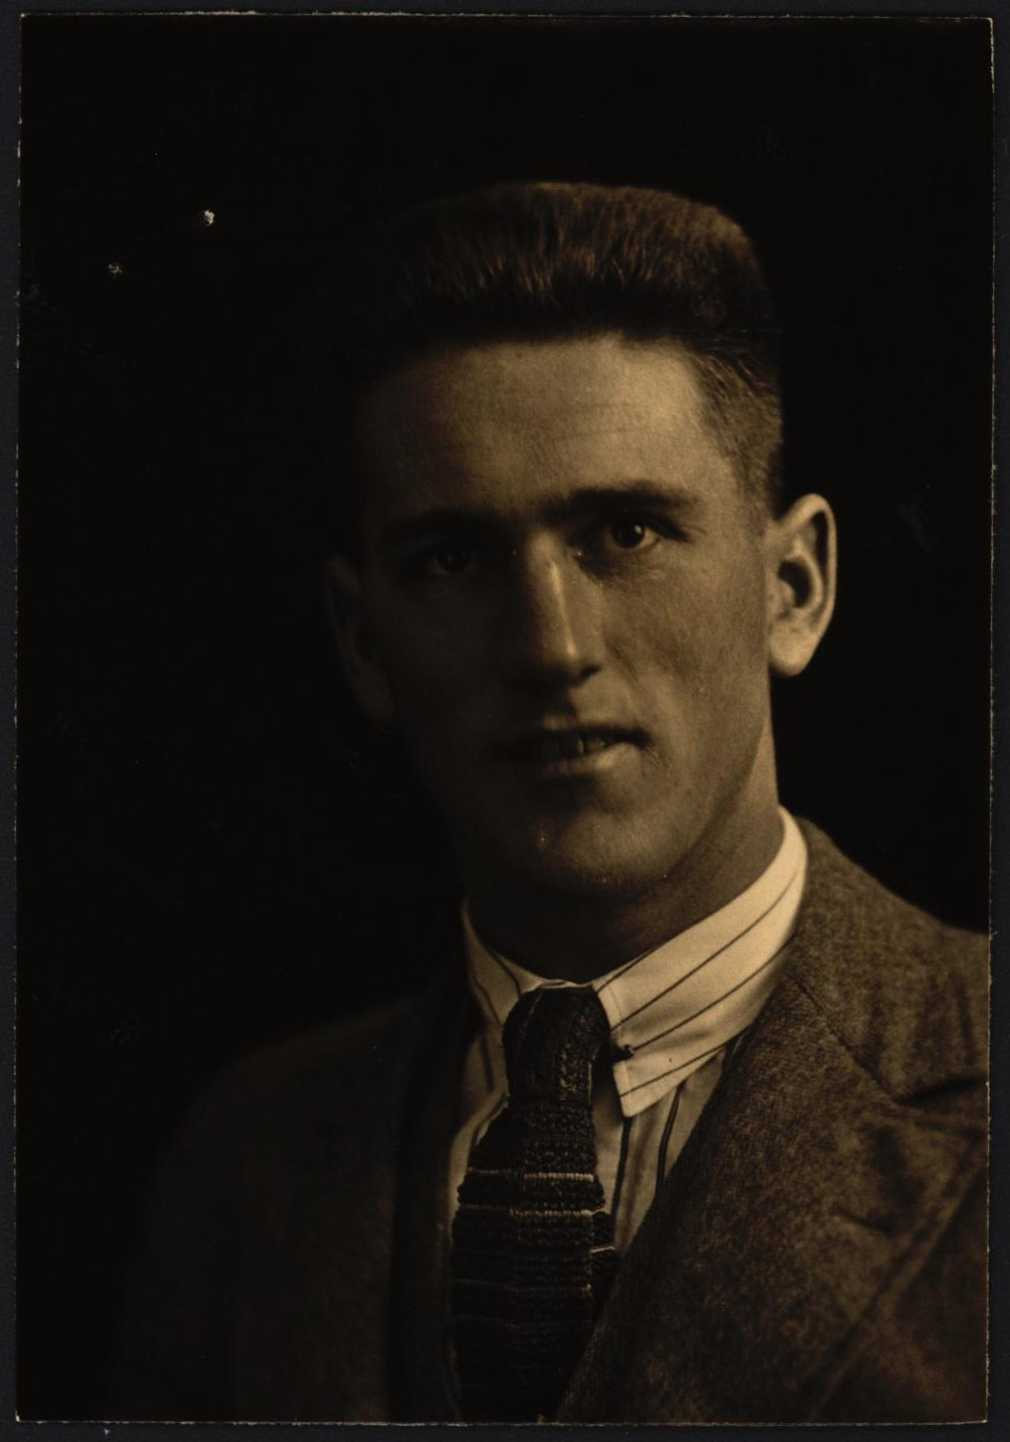 Ronald Terowie Stewart passport photo